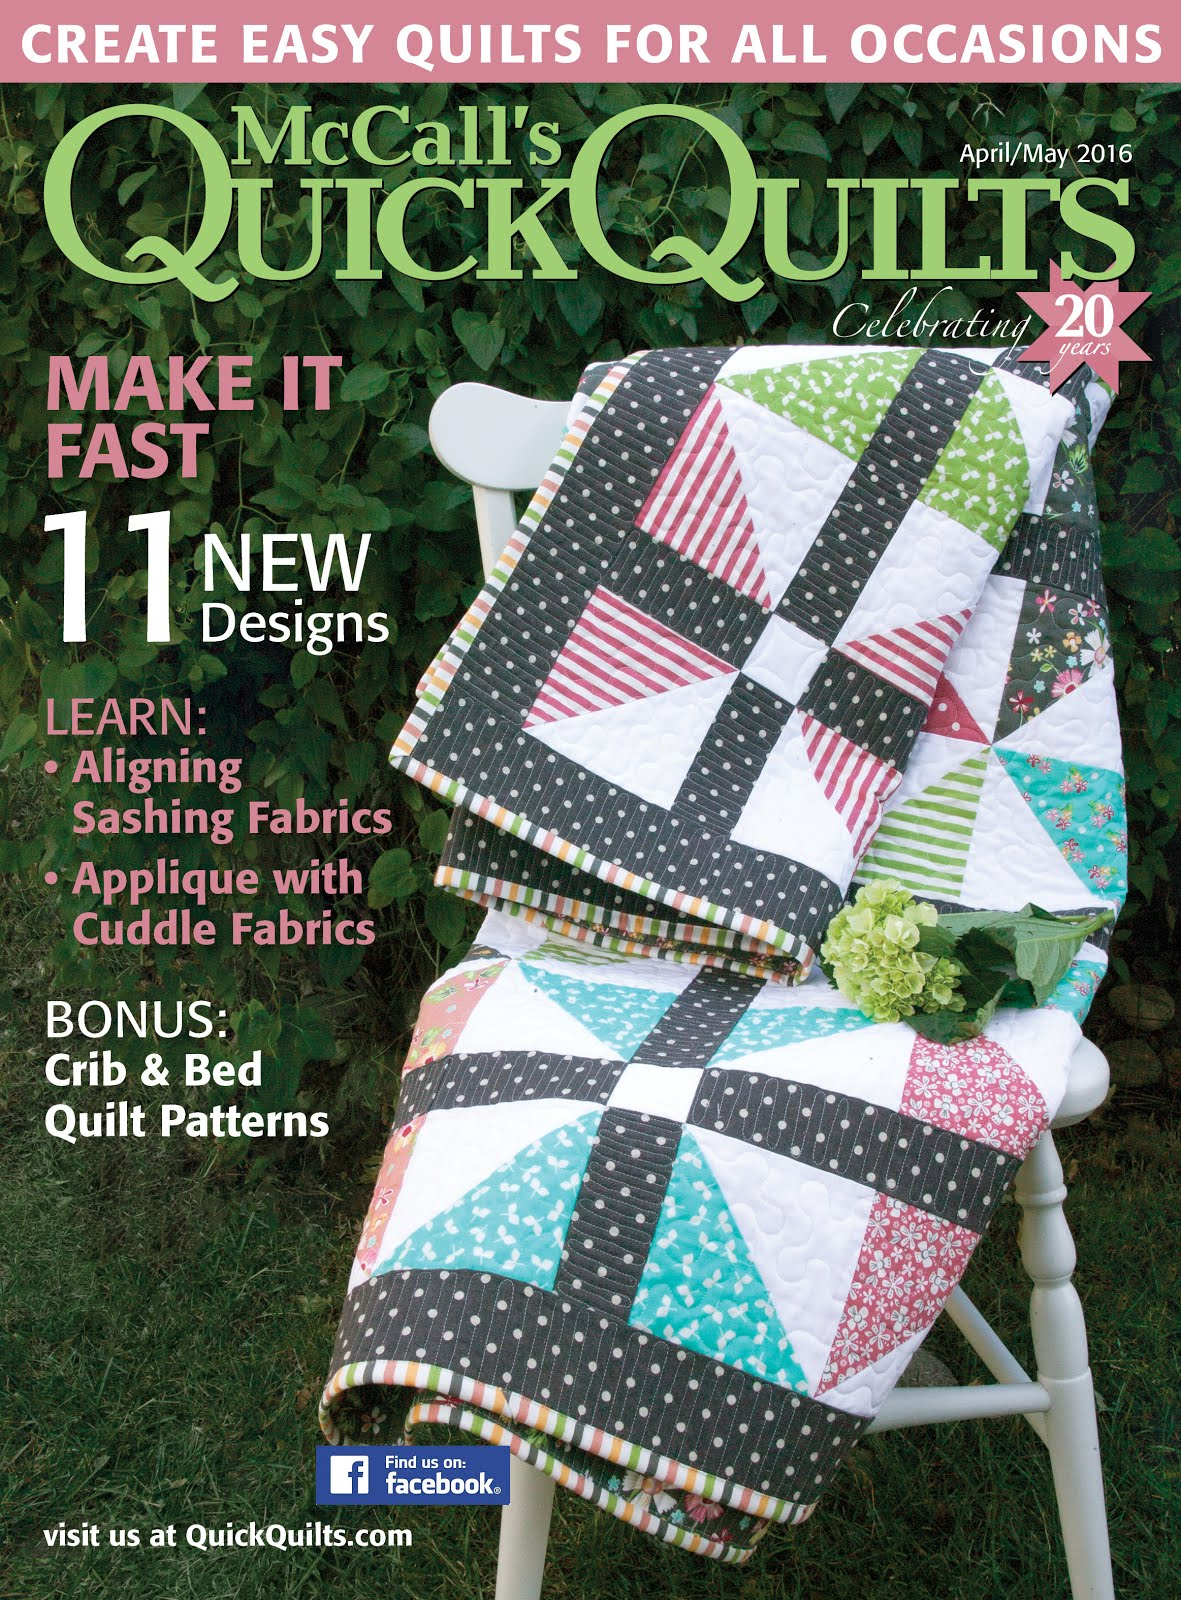 Check out my Polka Dot Playground quilt in this month's issue